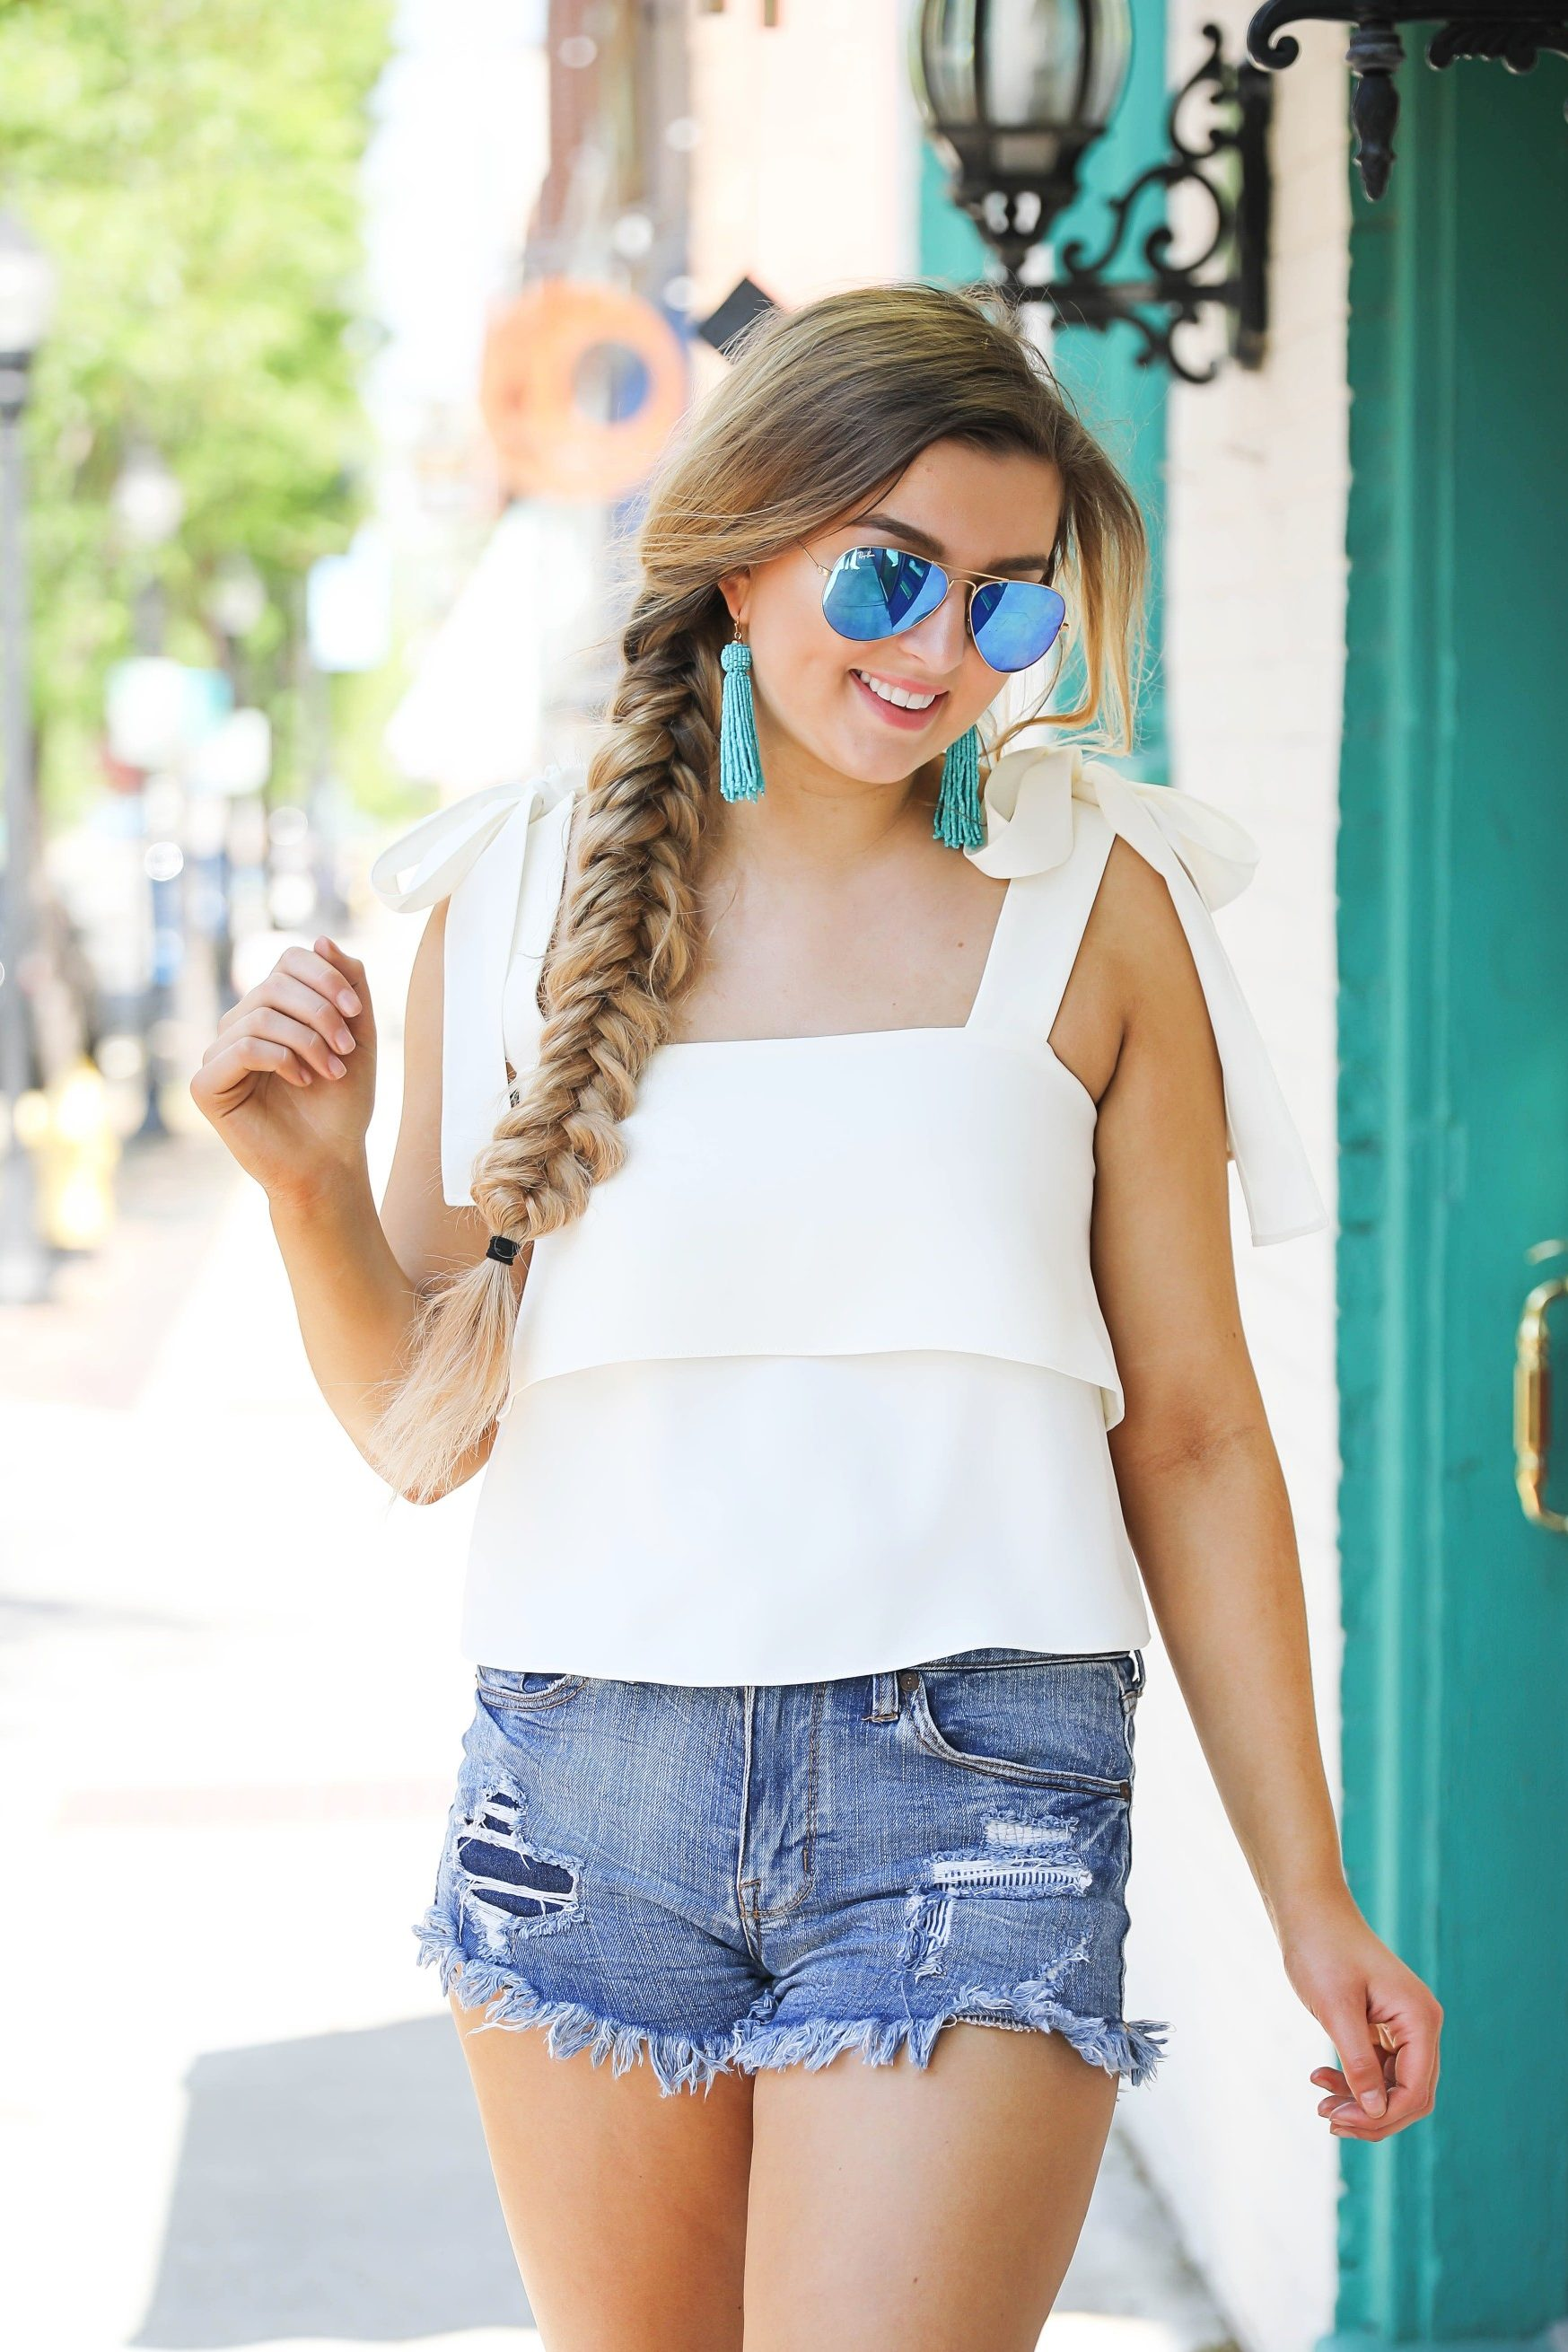 White bow sleeve tank with turquoise tassel earrings and sunglasses on fashion blog daily dose of charm dailydoseofcharm.com lauren lindmark